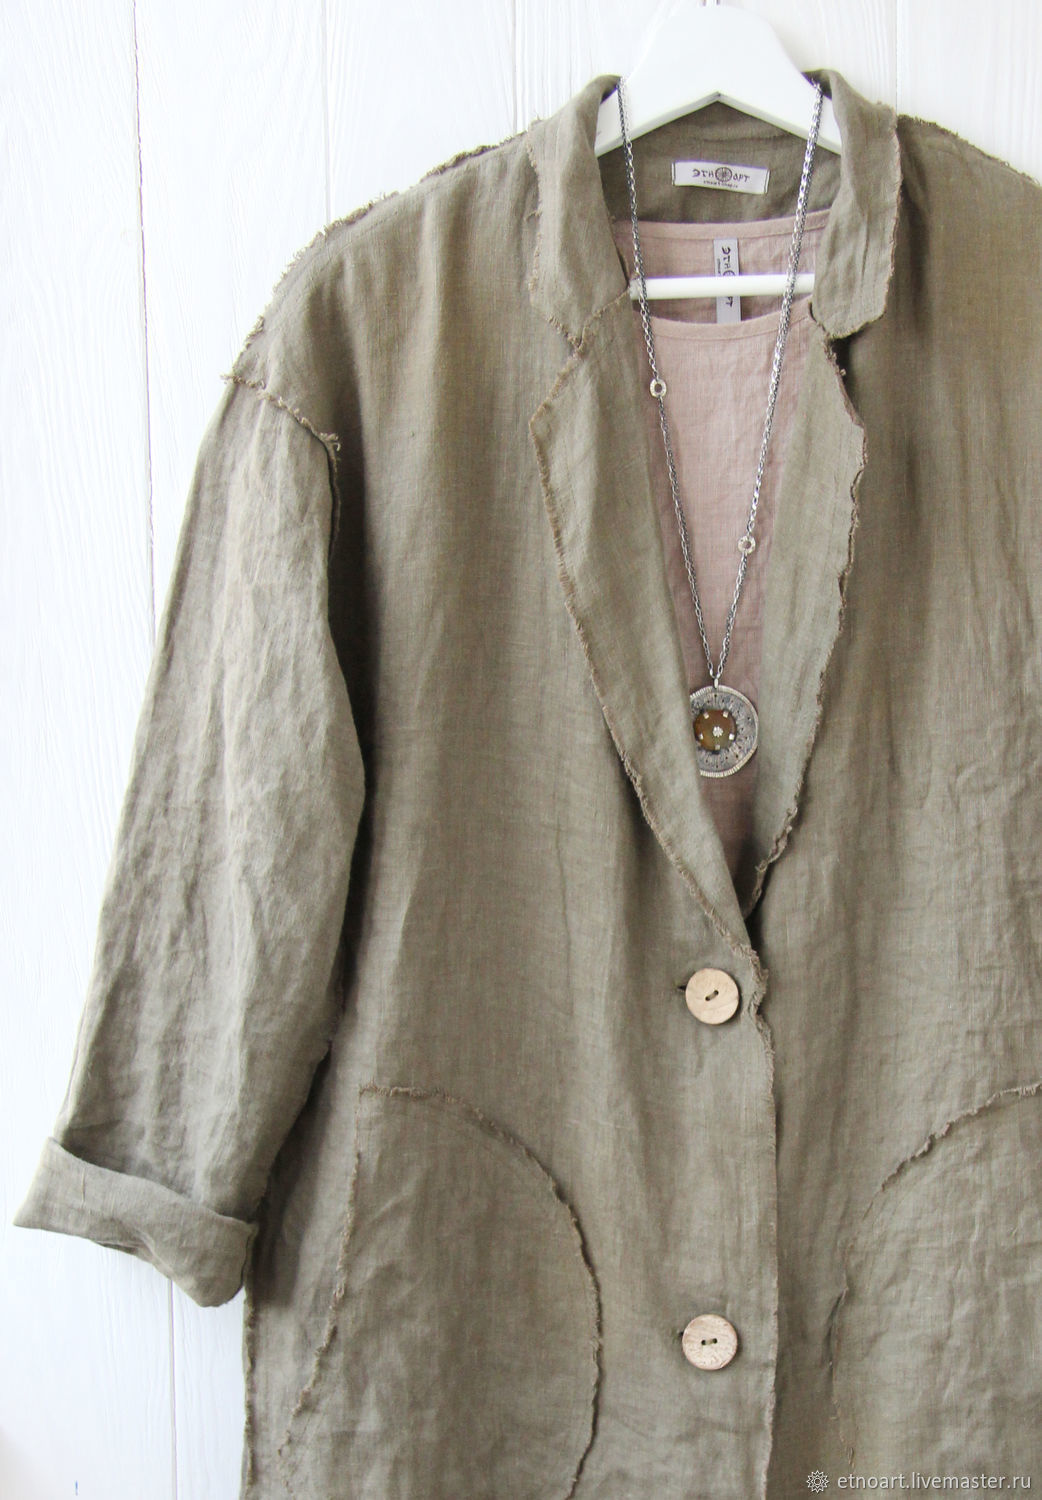 Summer linen cardigan coat with open edges, Jackets, Tomsk,  Фото №1